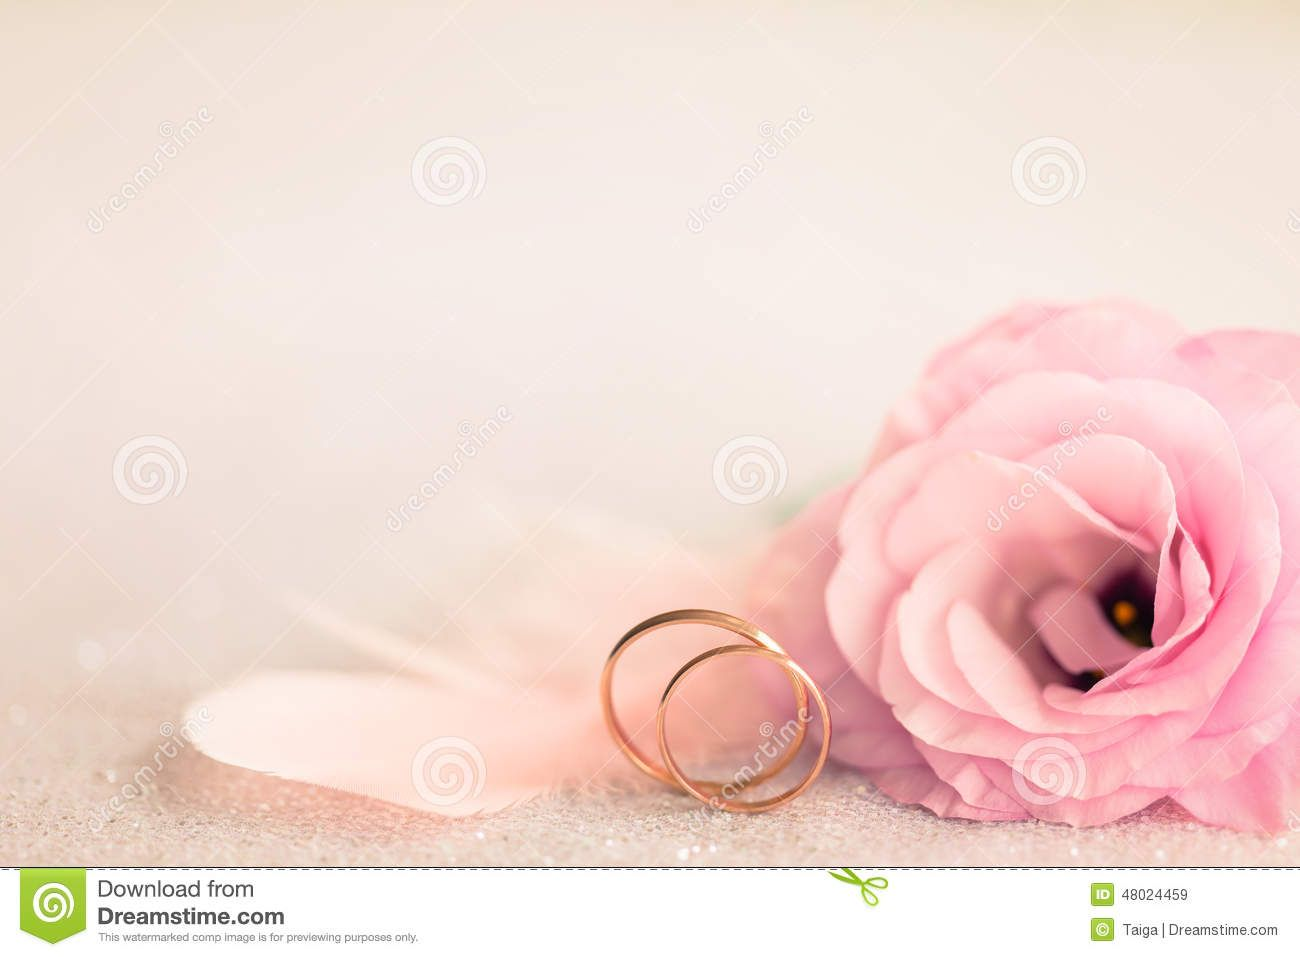 Wedding Background With Gold Rings Gentle Flower And Light Pin